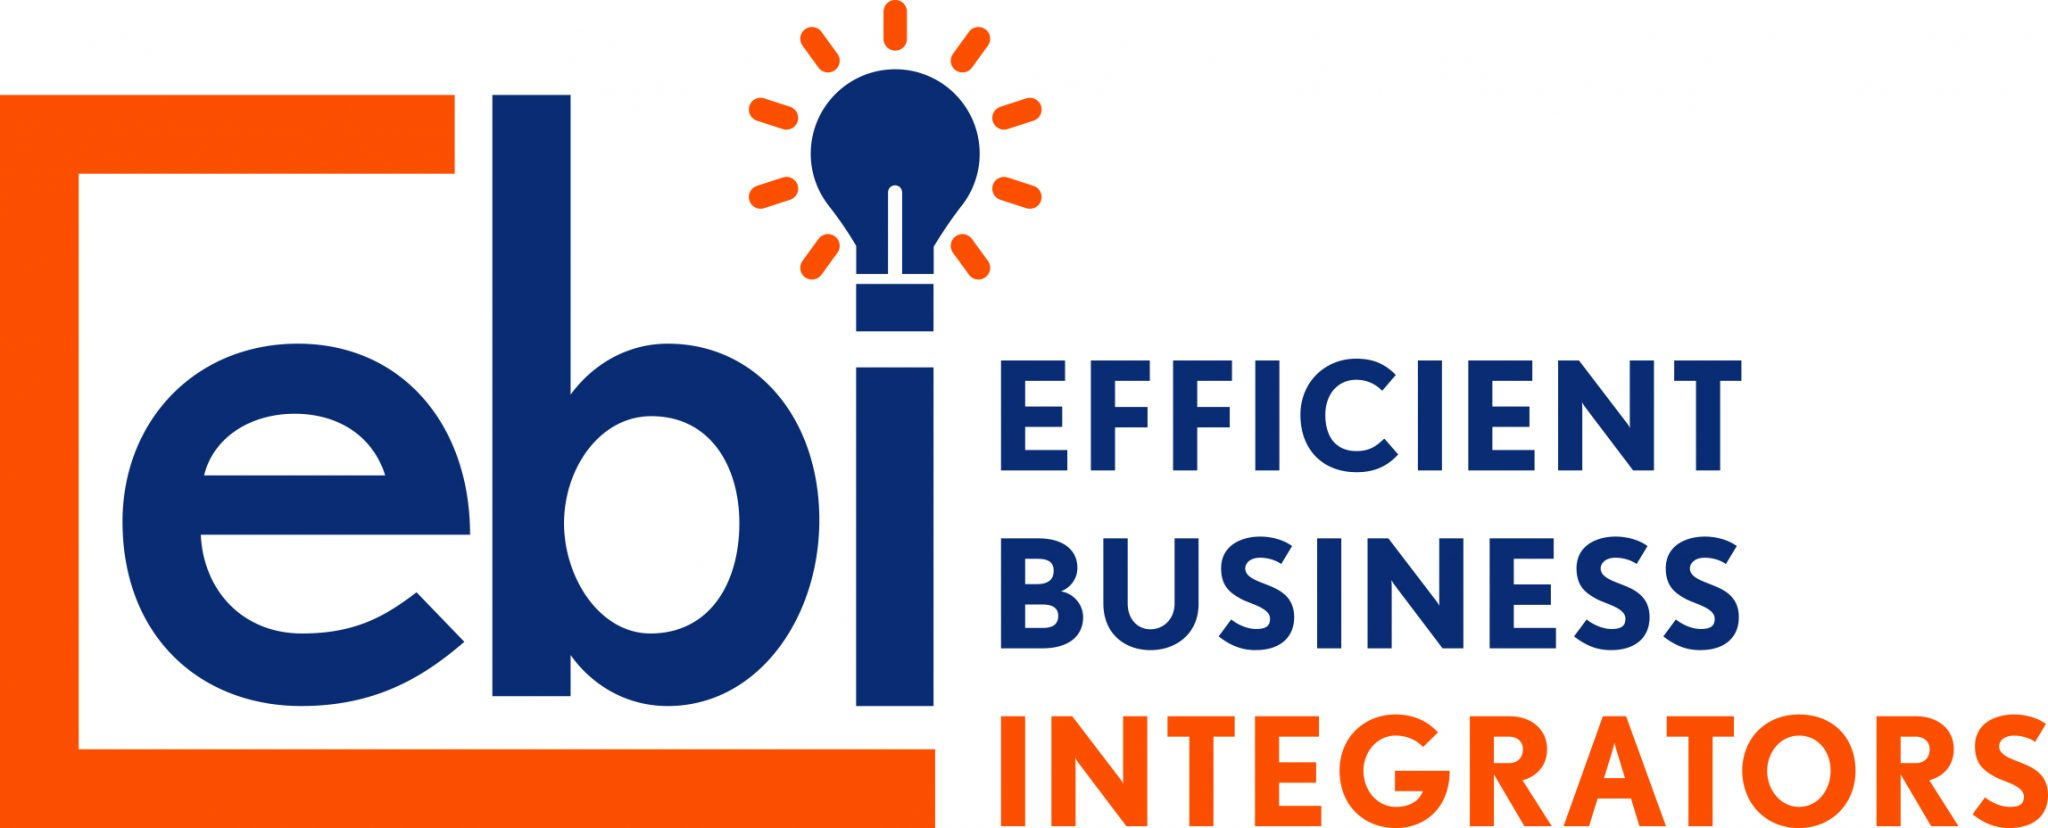 Efficient Business Integrators